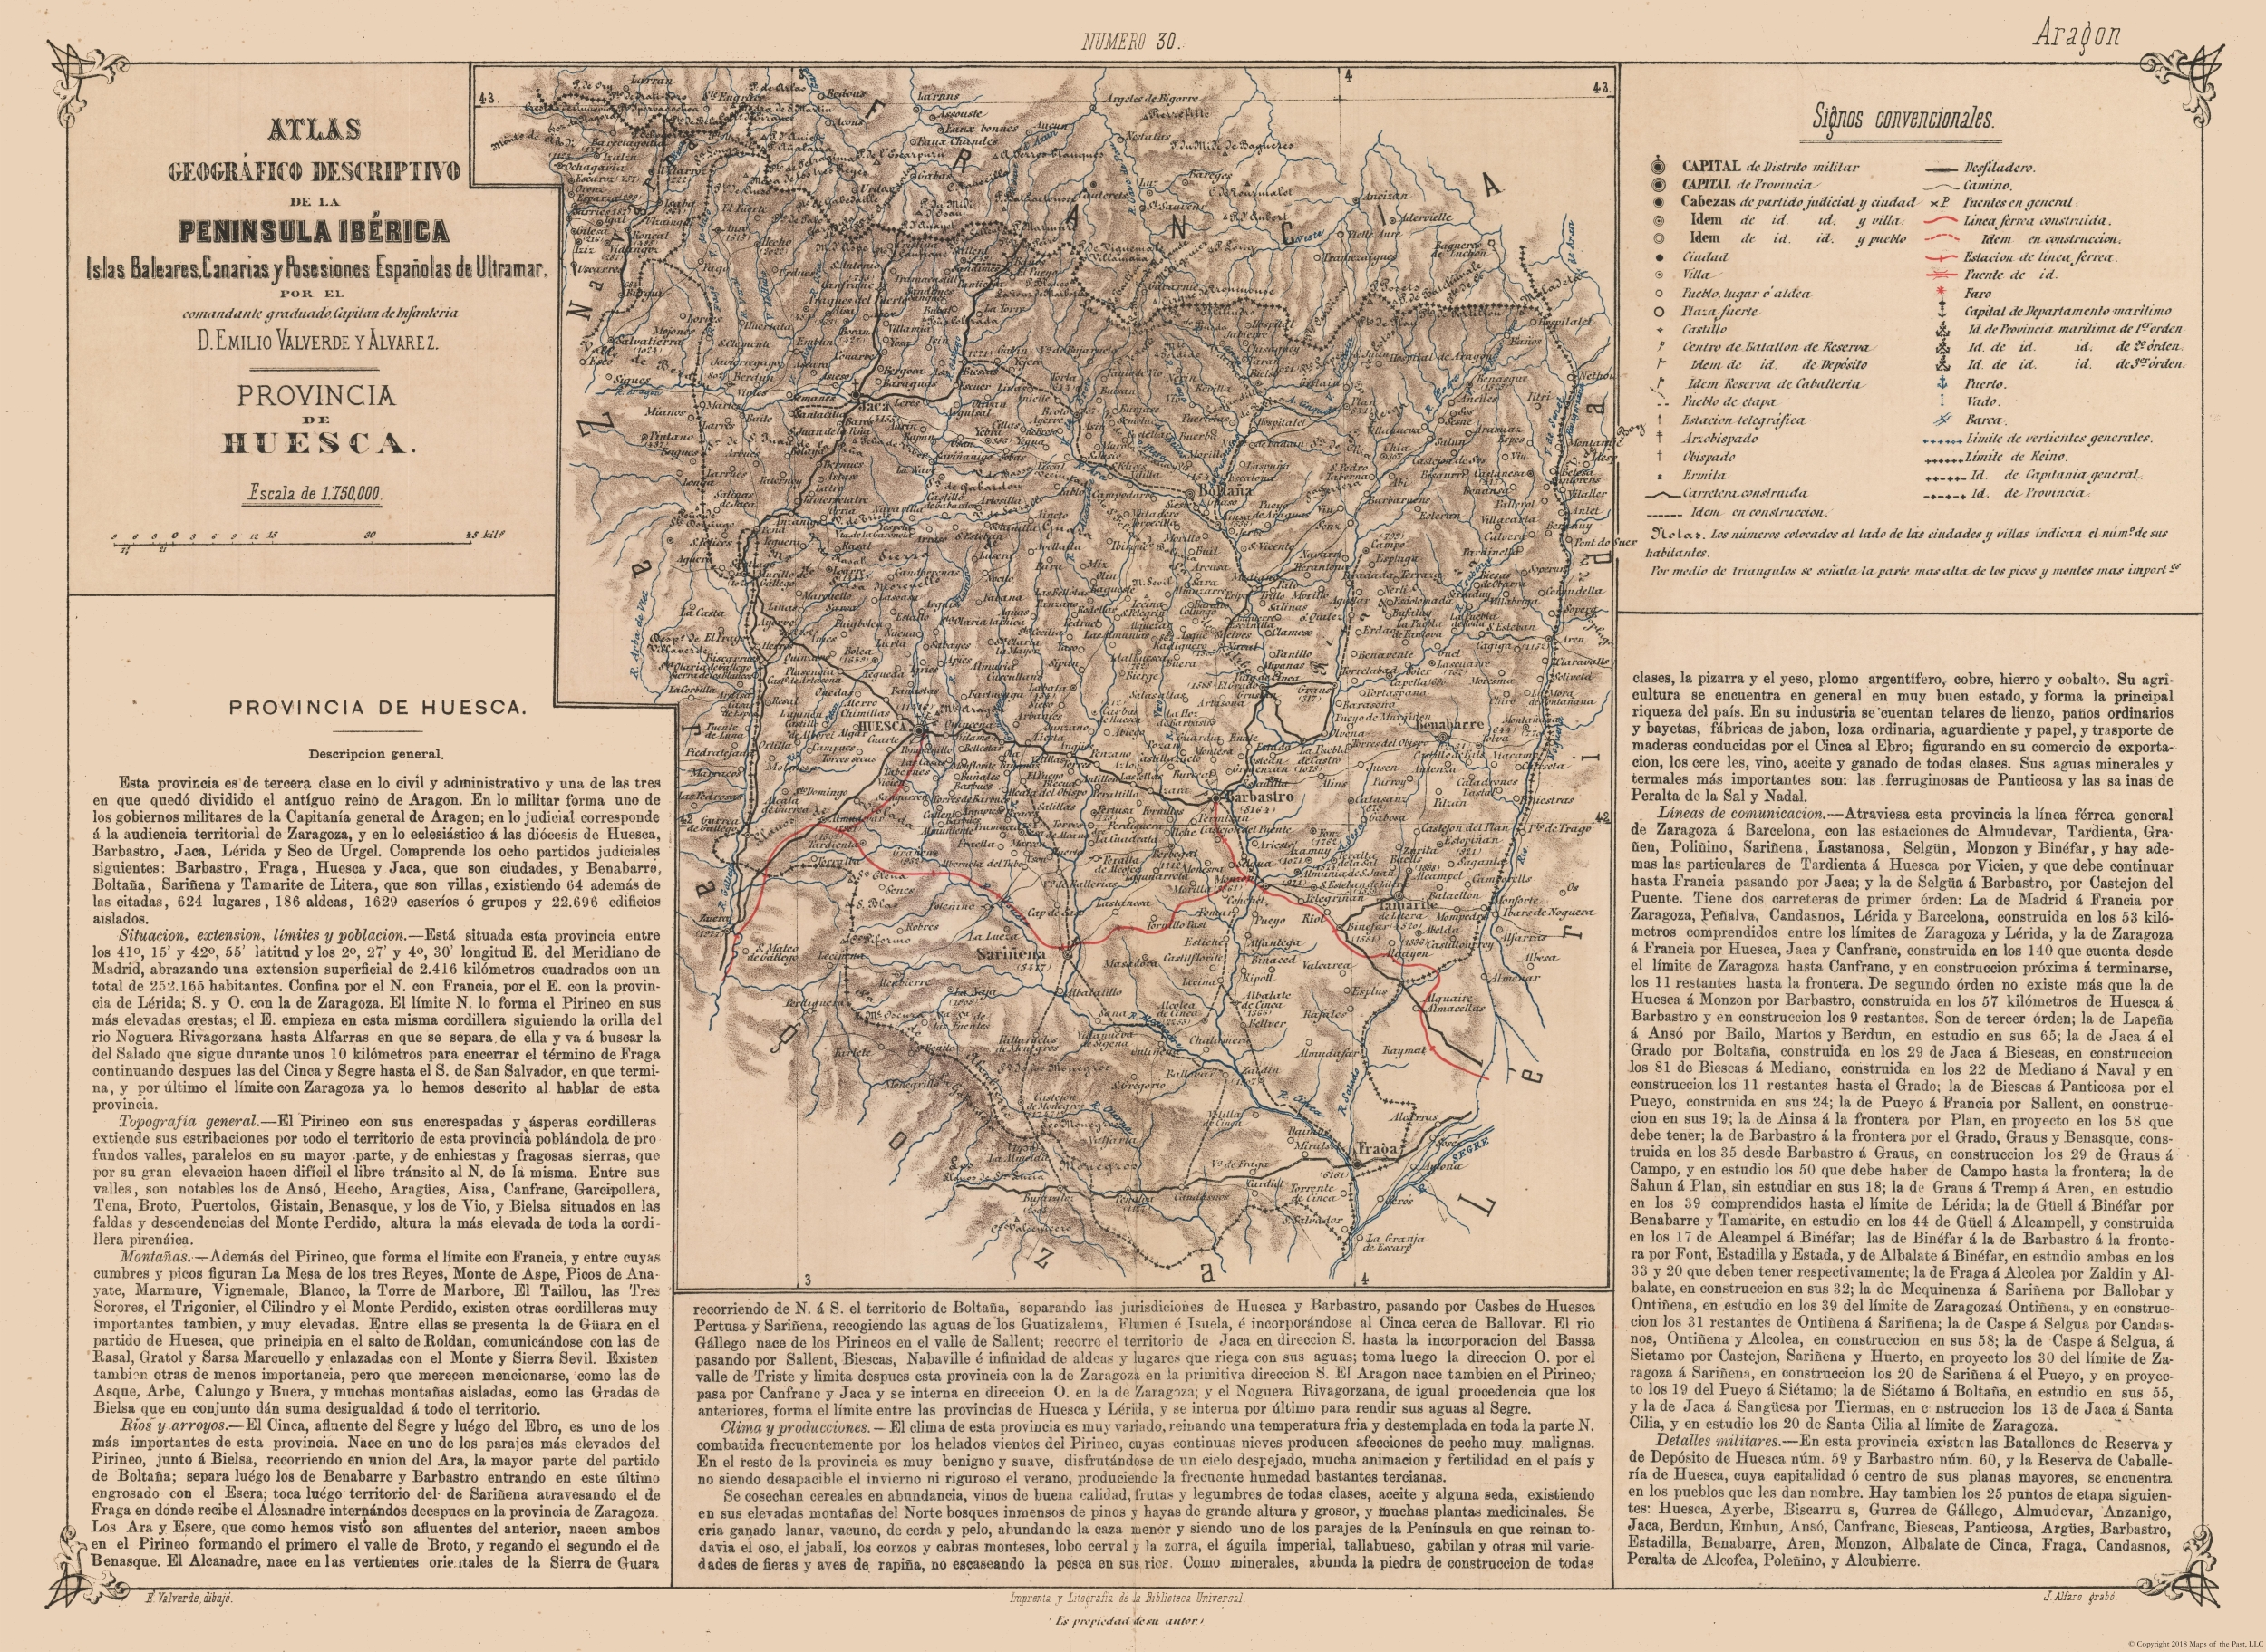 Map Of Spain Huesca.International Map Huesca Province Valverde S Atlas 1880 31 54 X 23